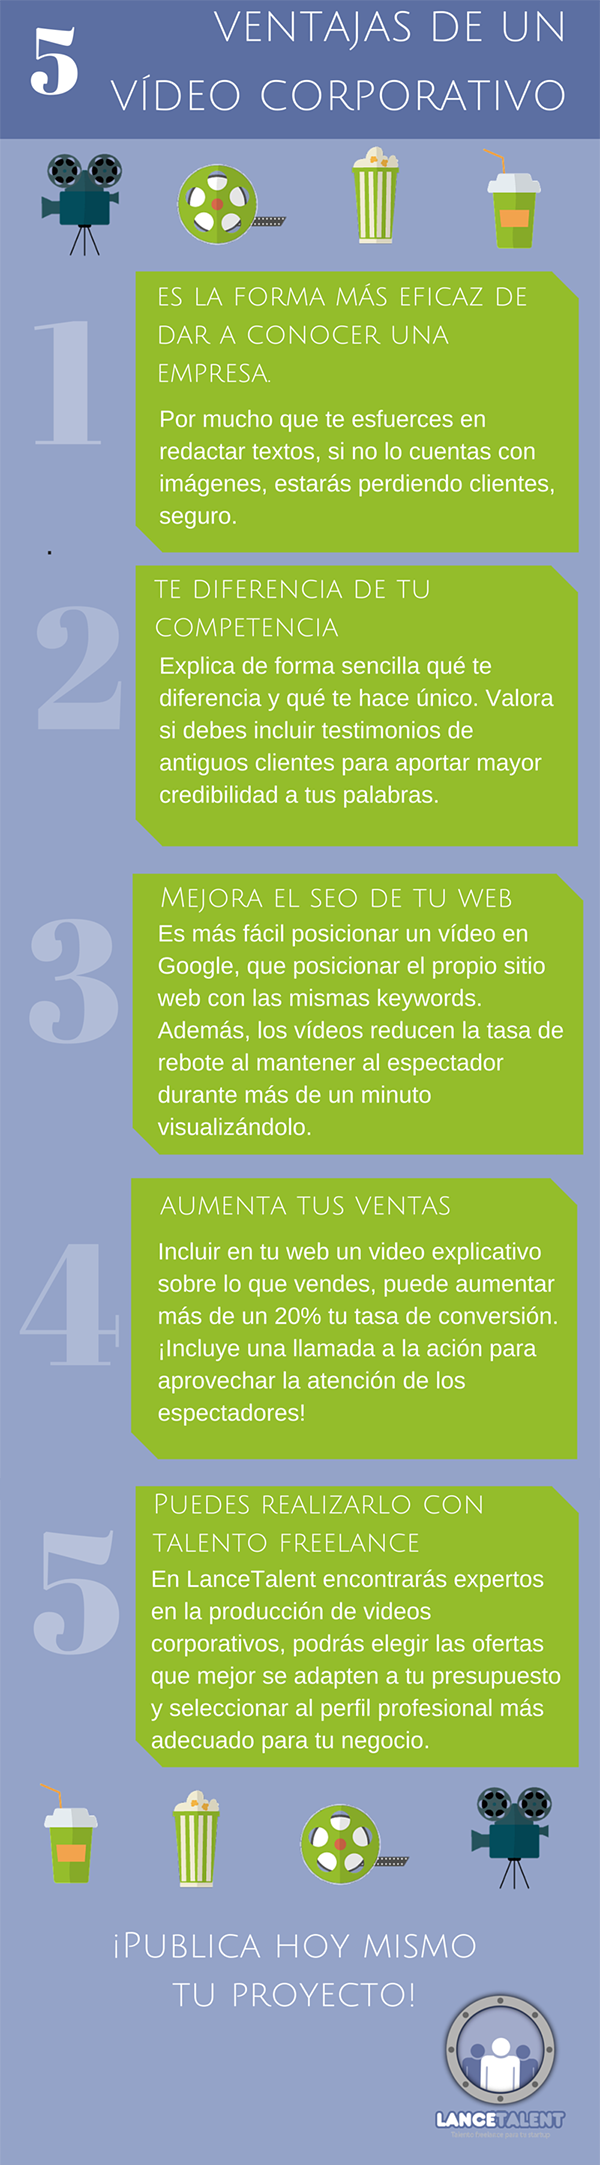 5 ventajas de un vídeo corporativo